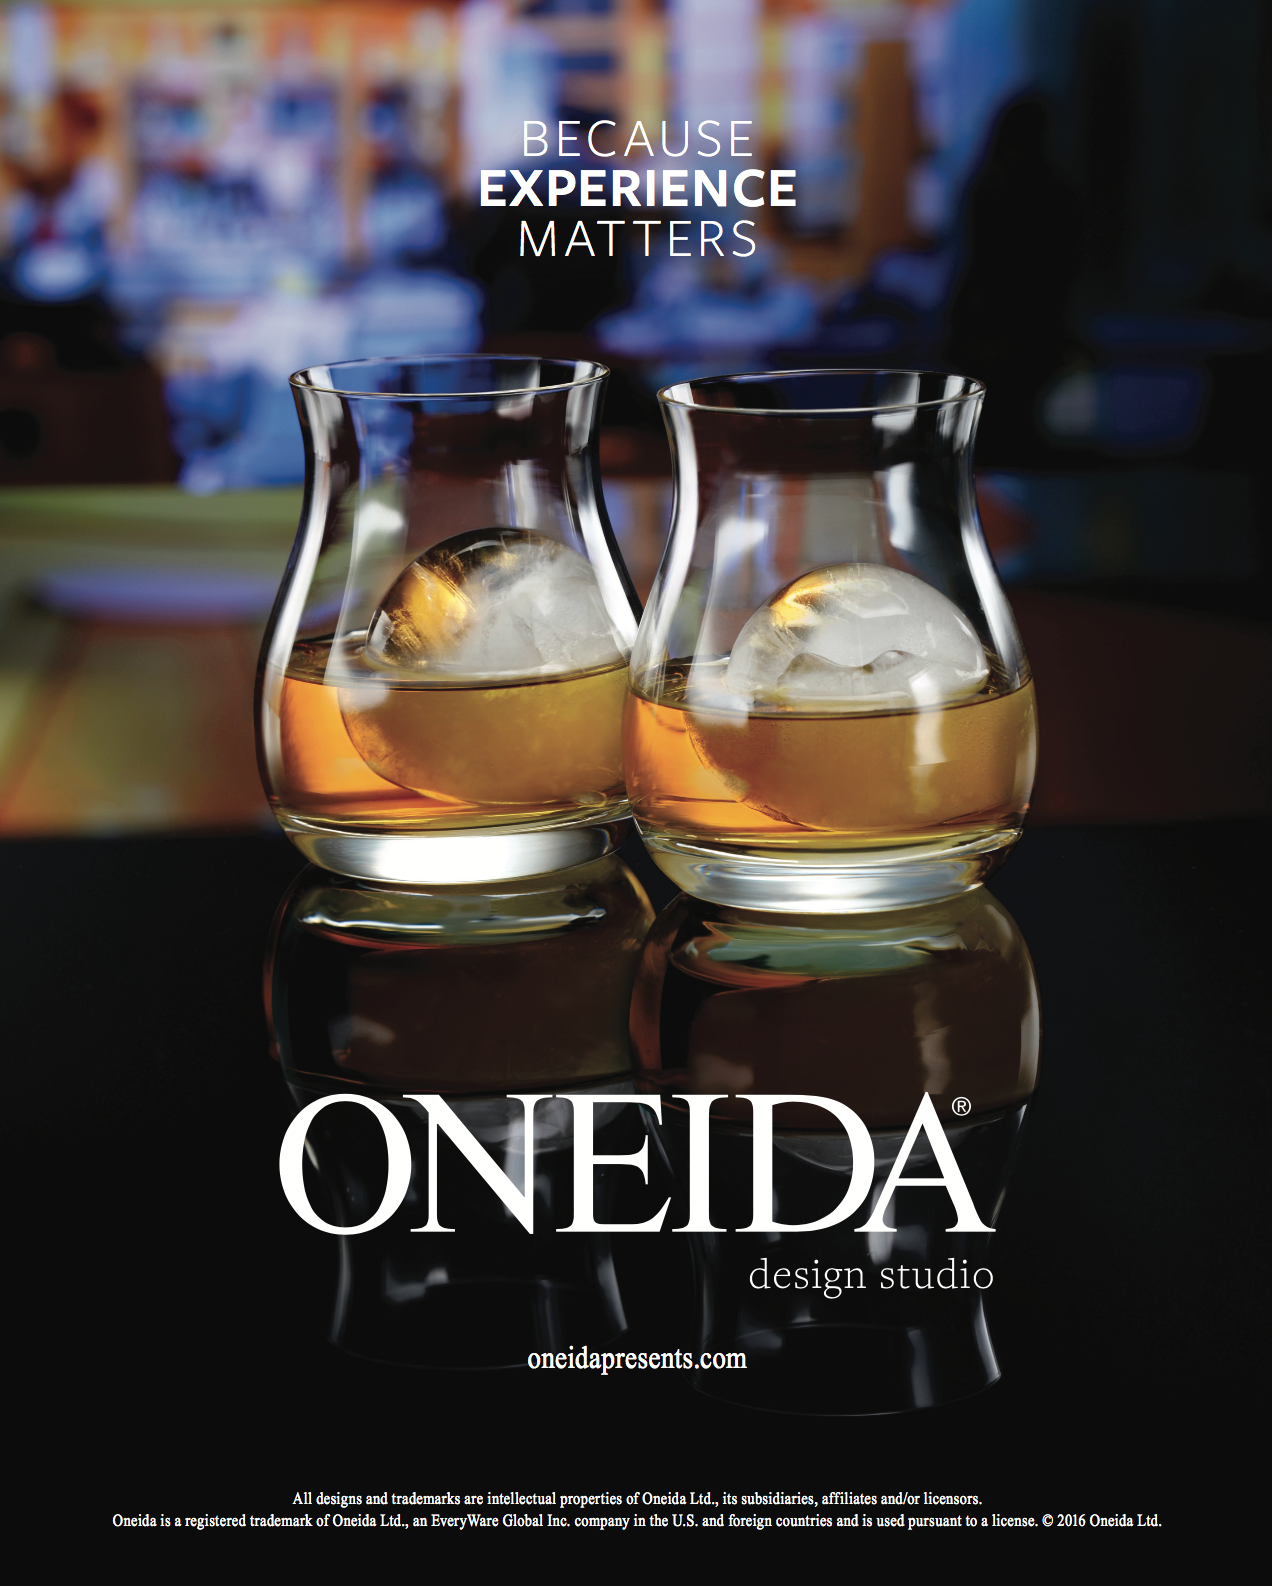 Cocktails in oneida glasses